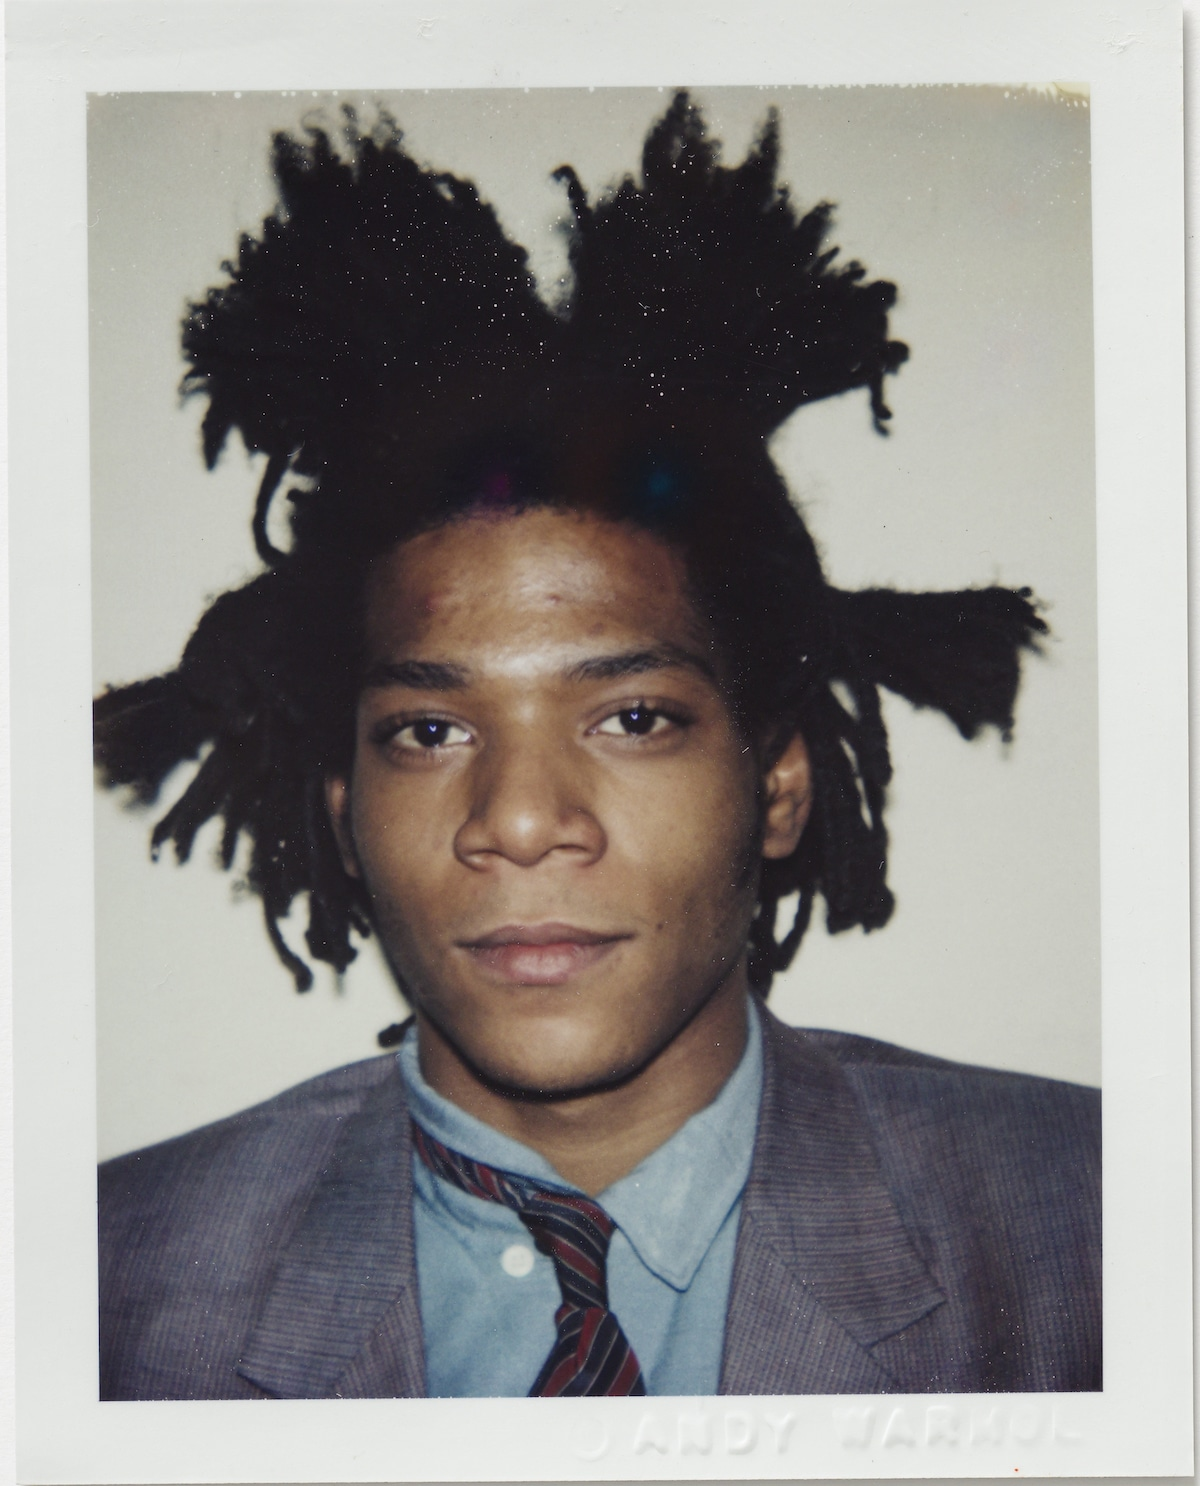 Andy Warhol Polaroid of Basquiat